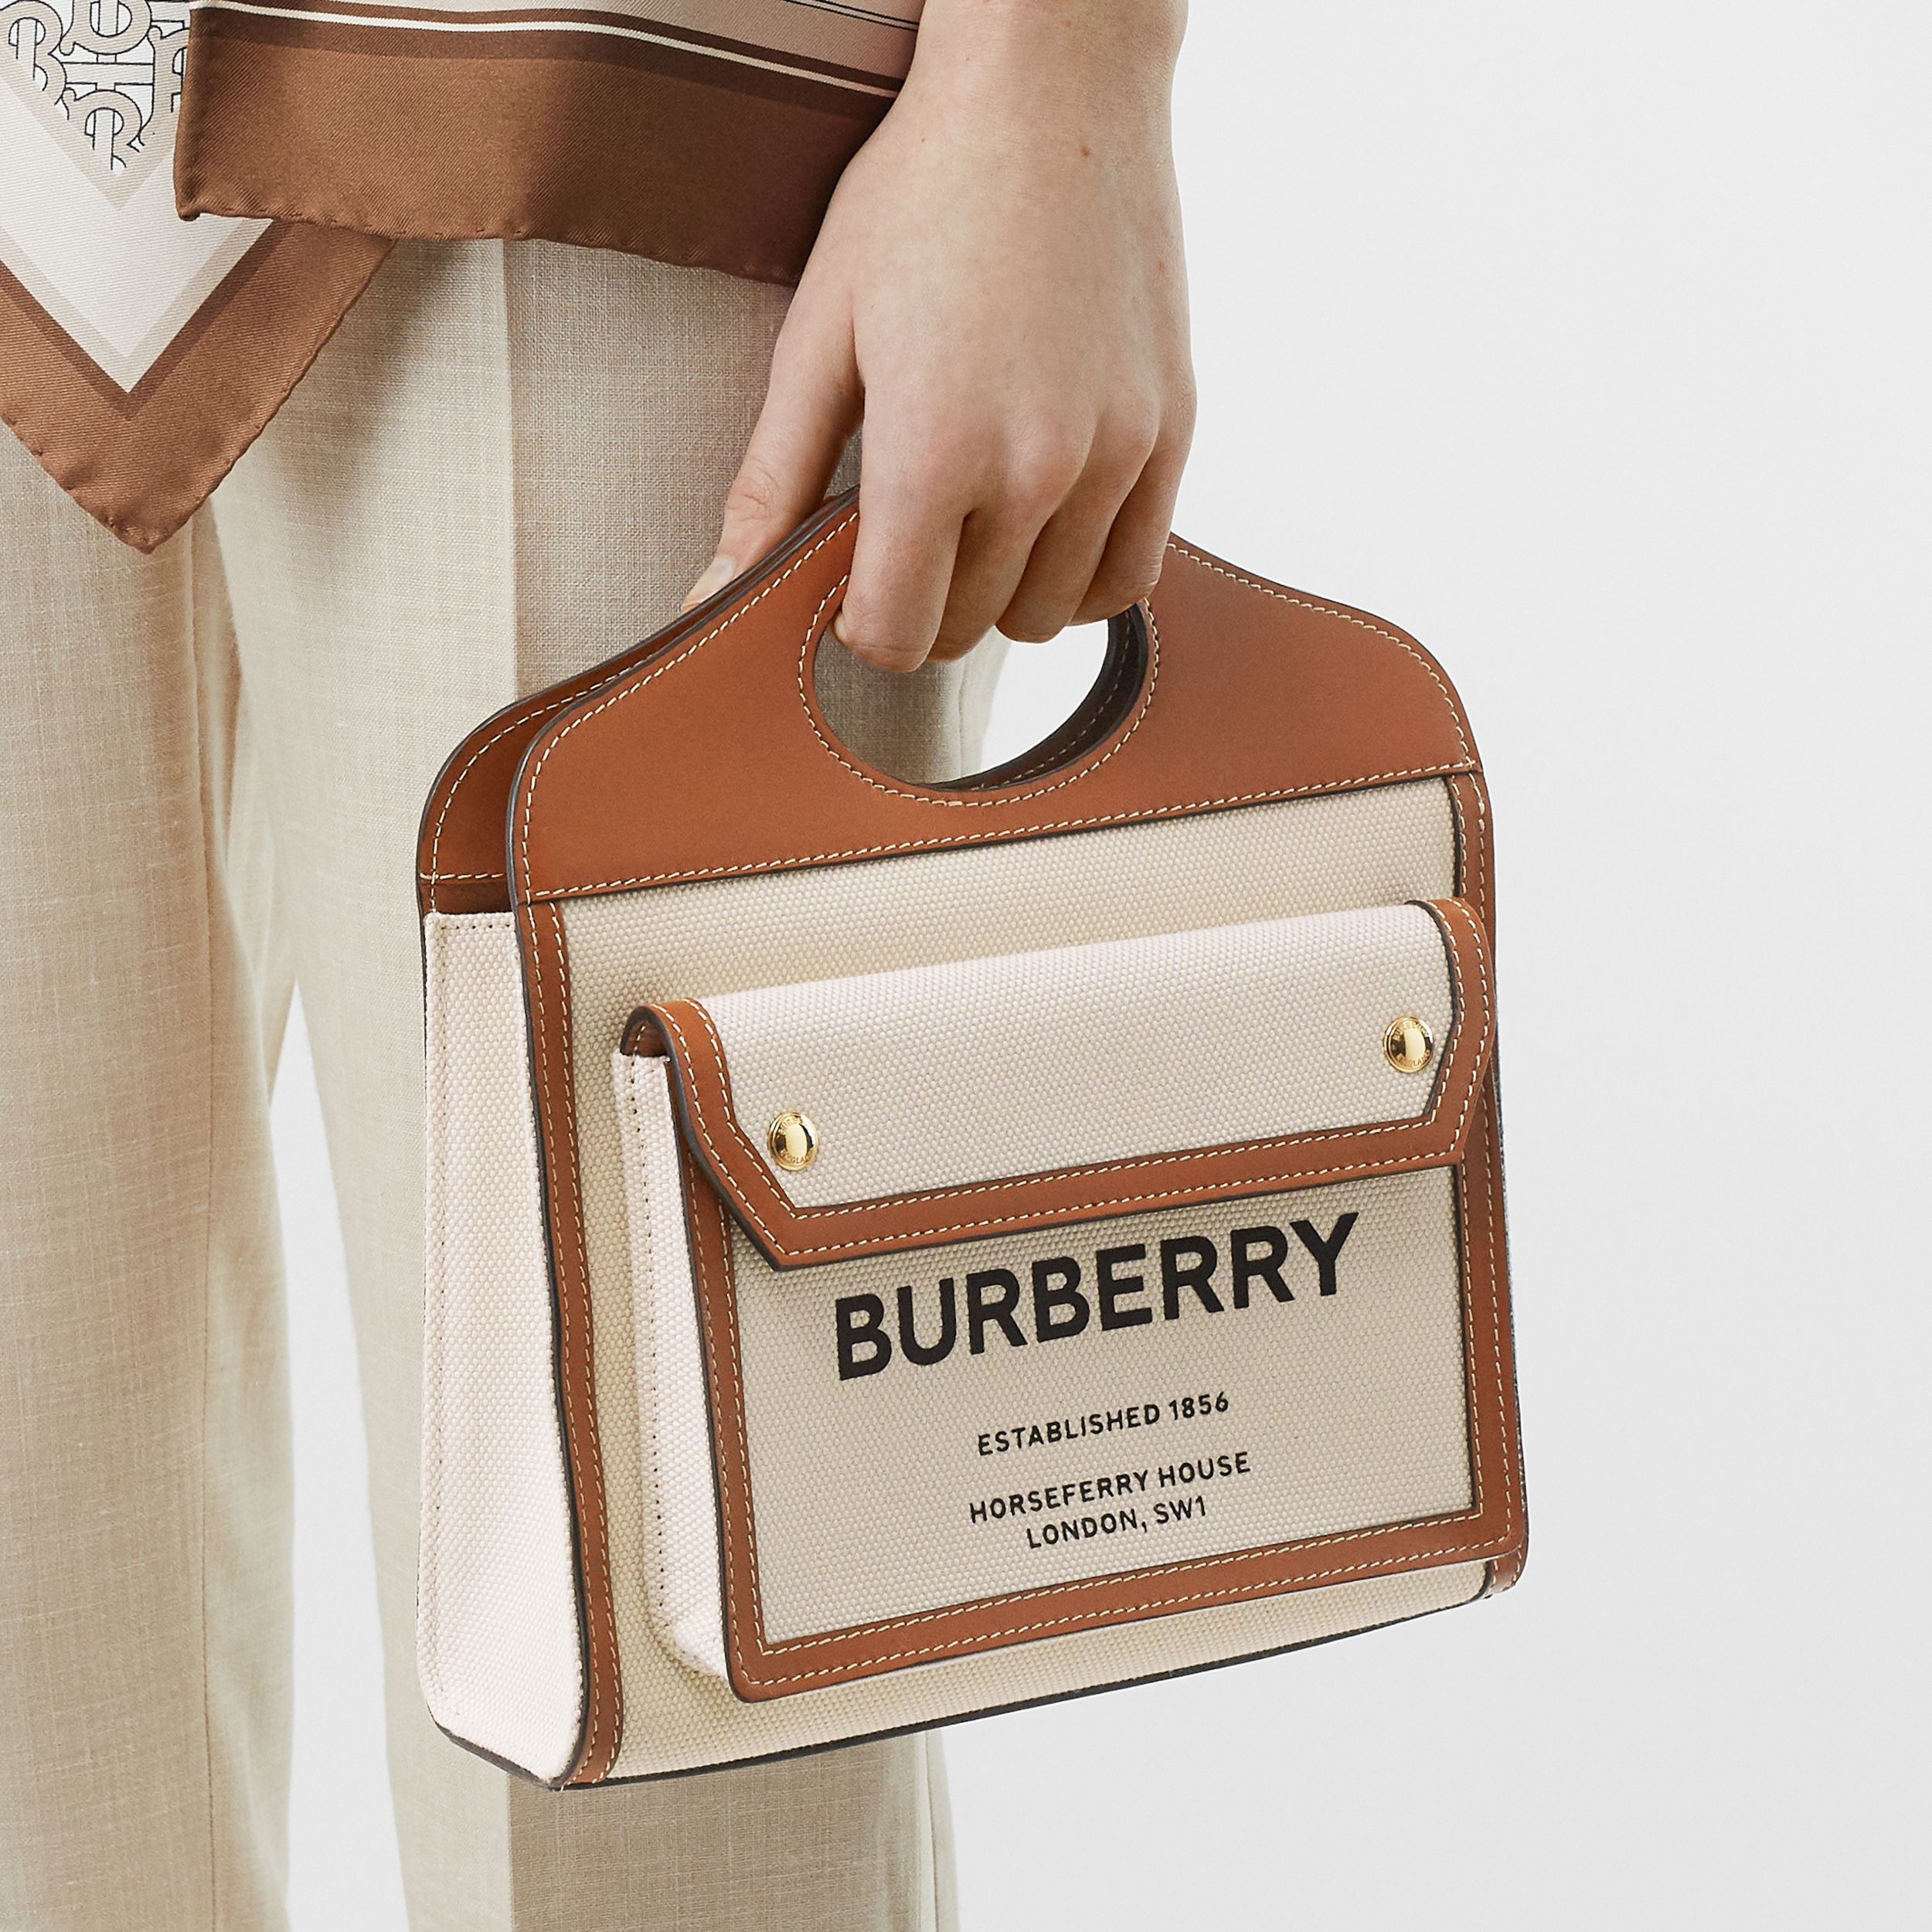 Mini Two-tone Canvas and Leather Pocket Bag in Natural/malt Brown - Women | Burberry Canada - 3